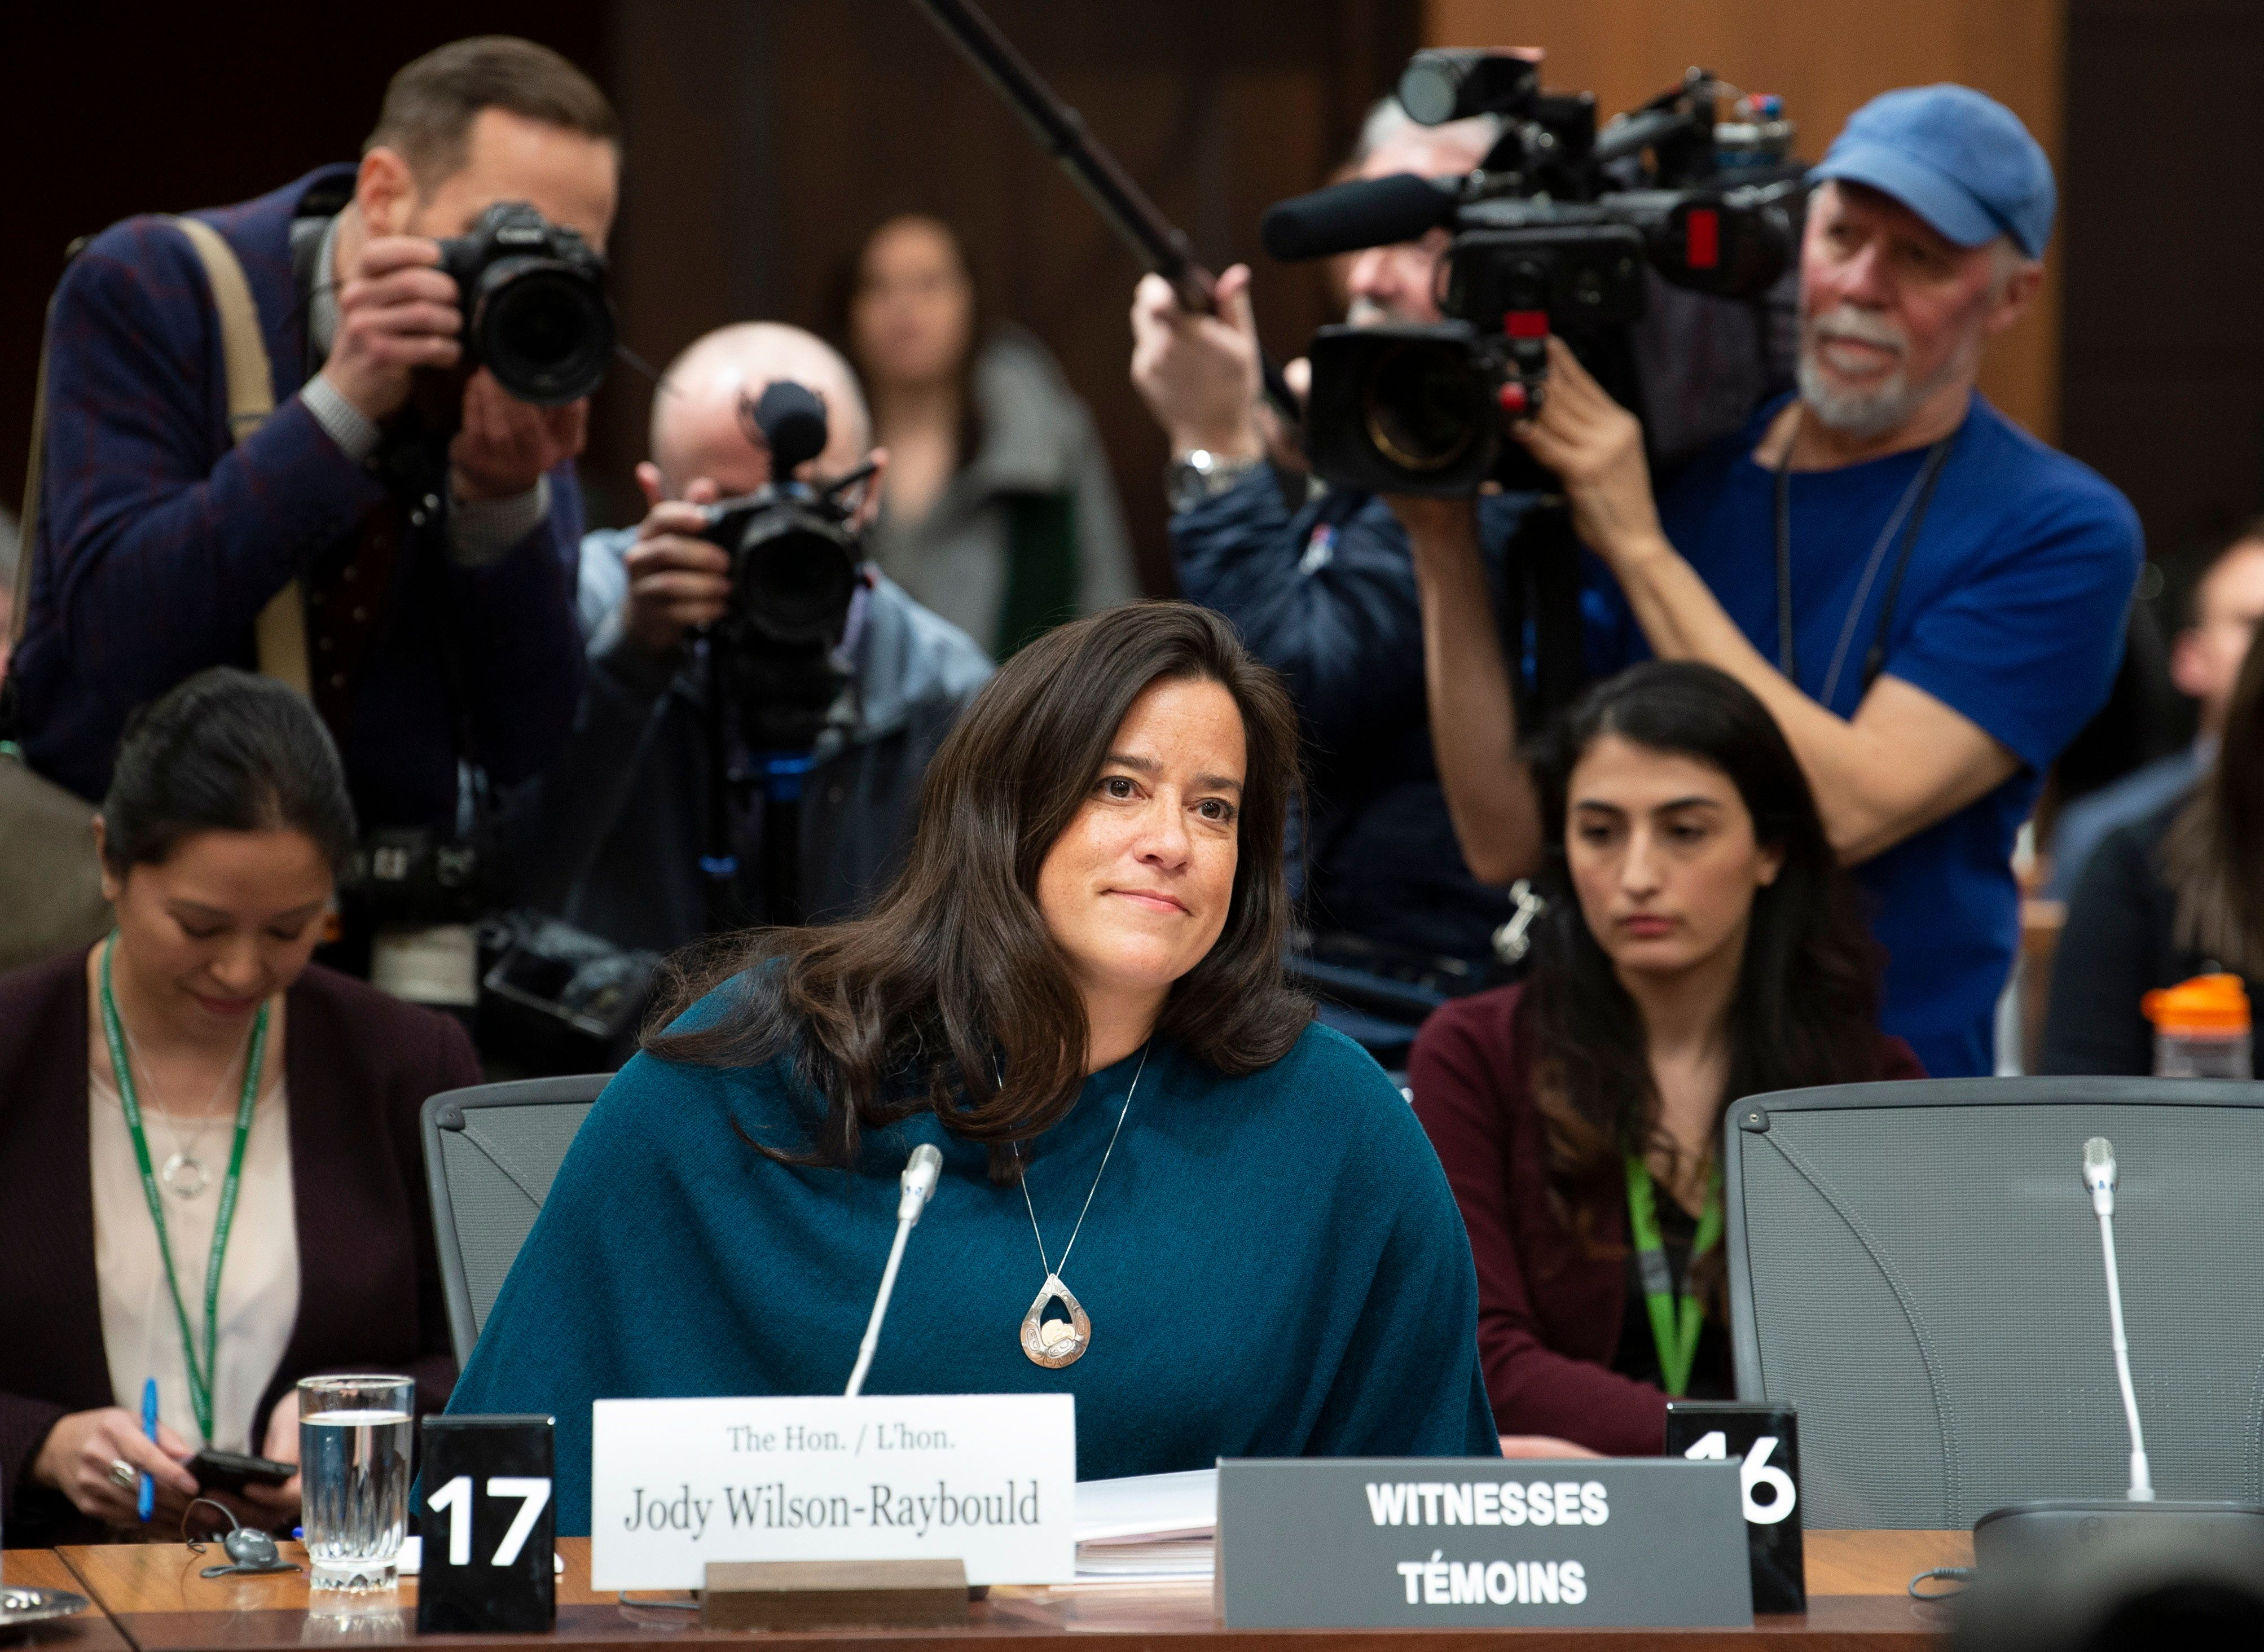 Cameras follow Jody Wilson Raybould as she waits to appear in front of the Justice committee in Ottawa